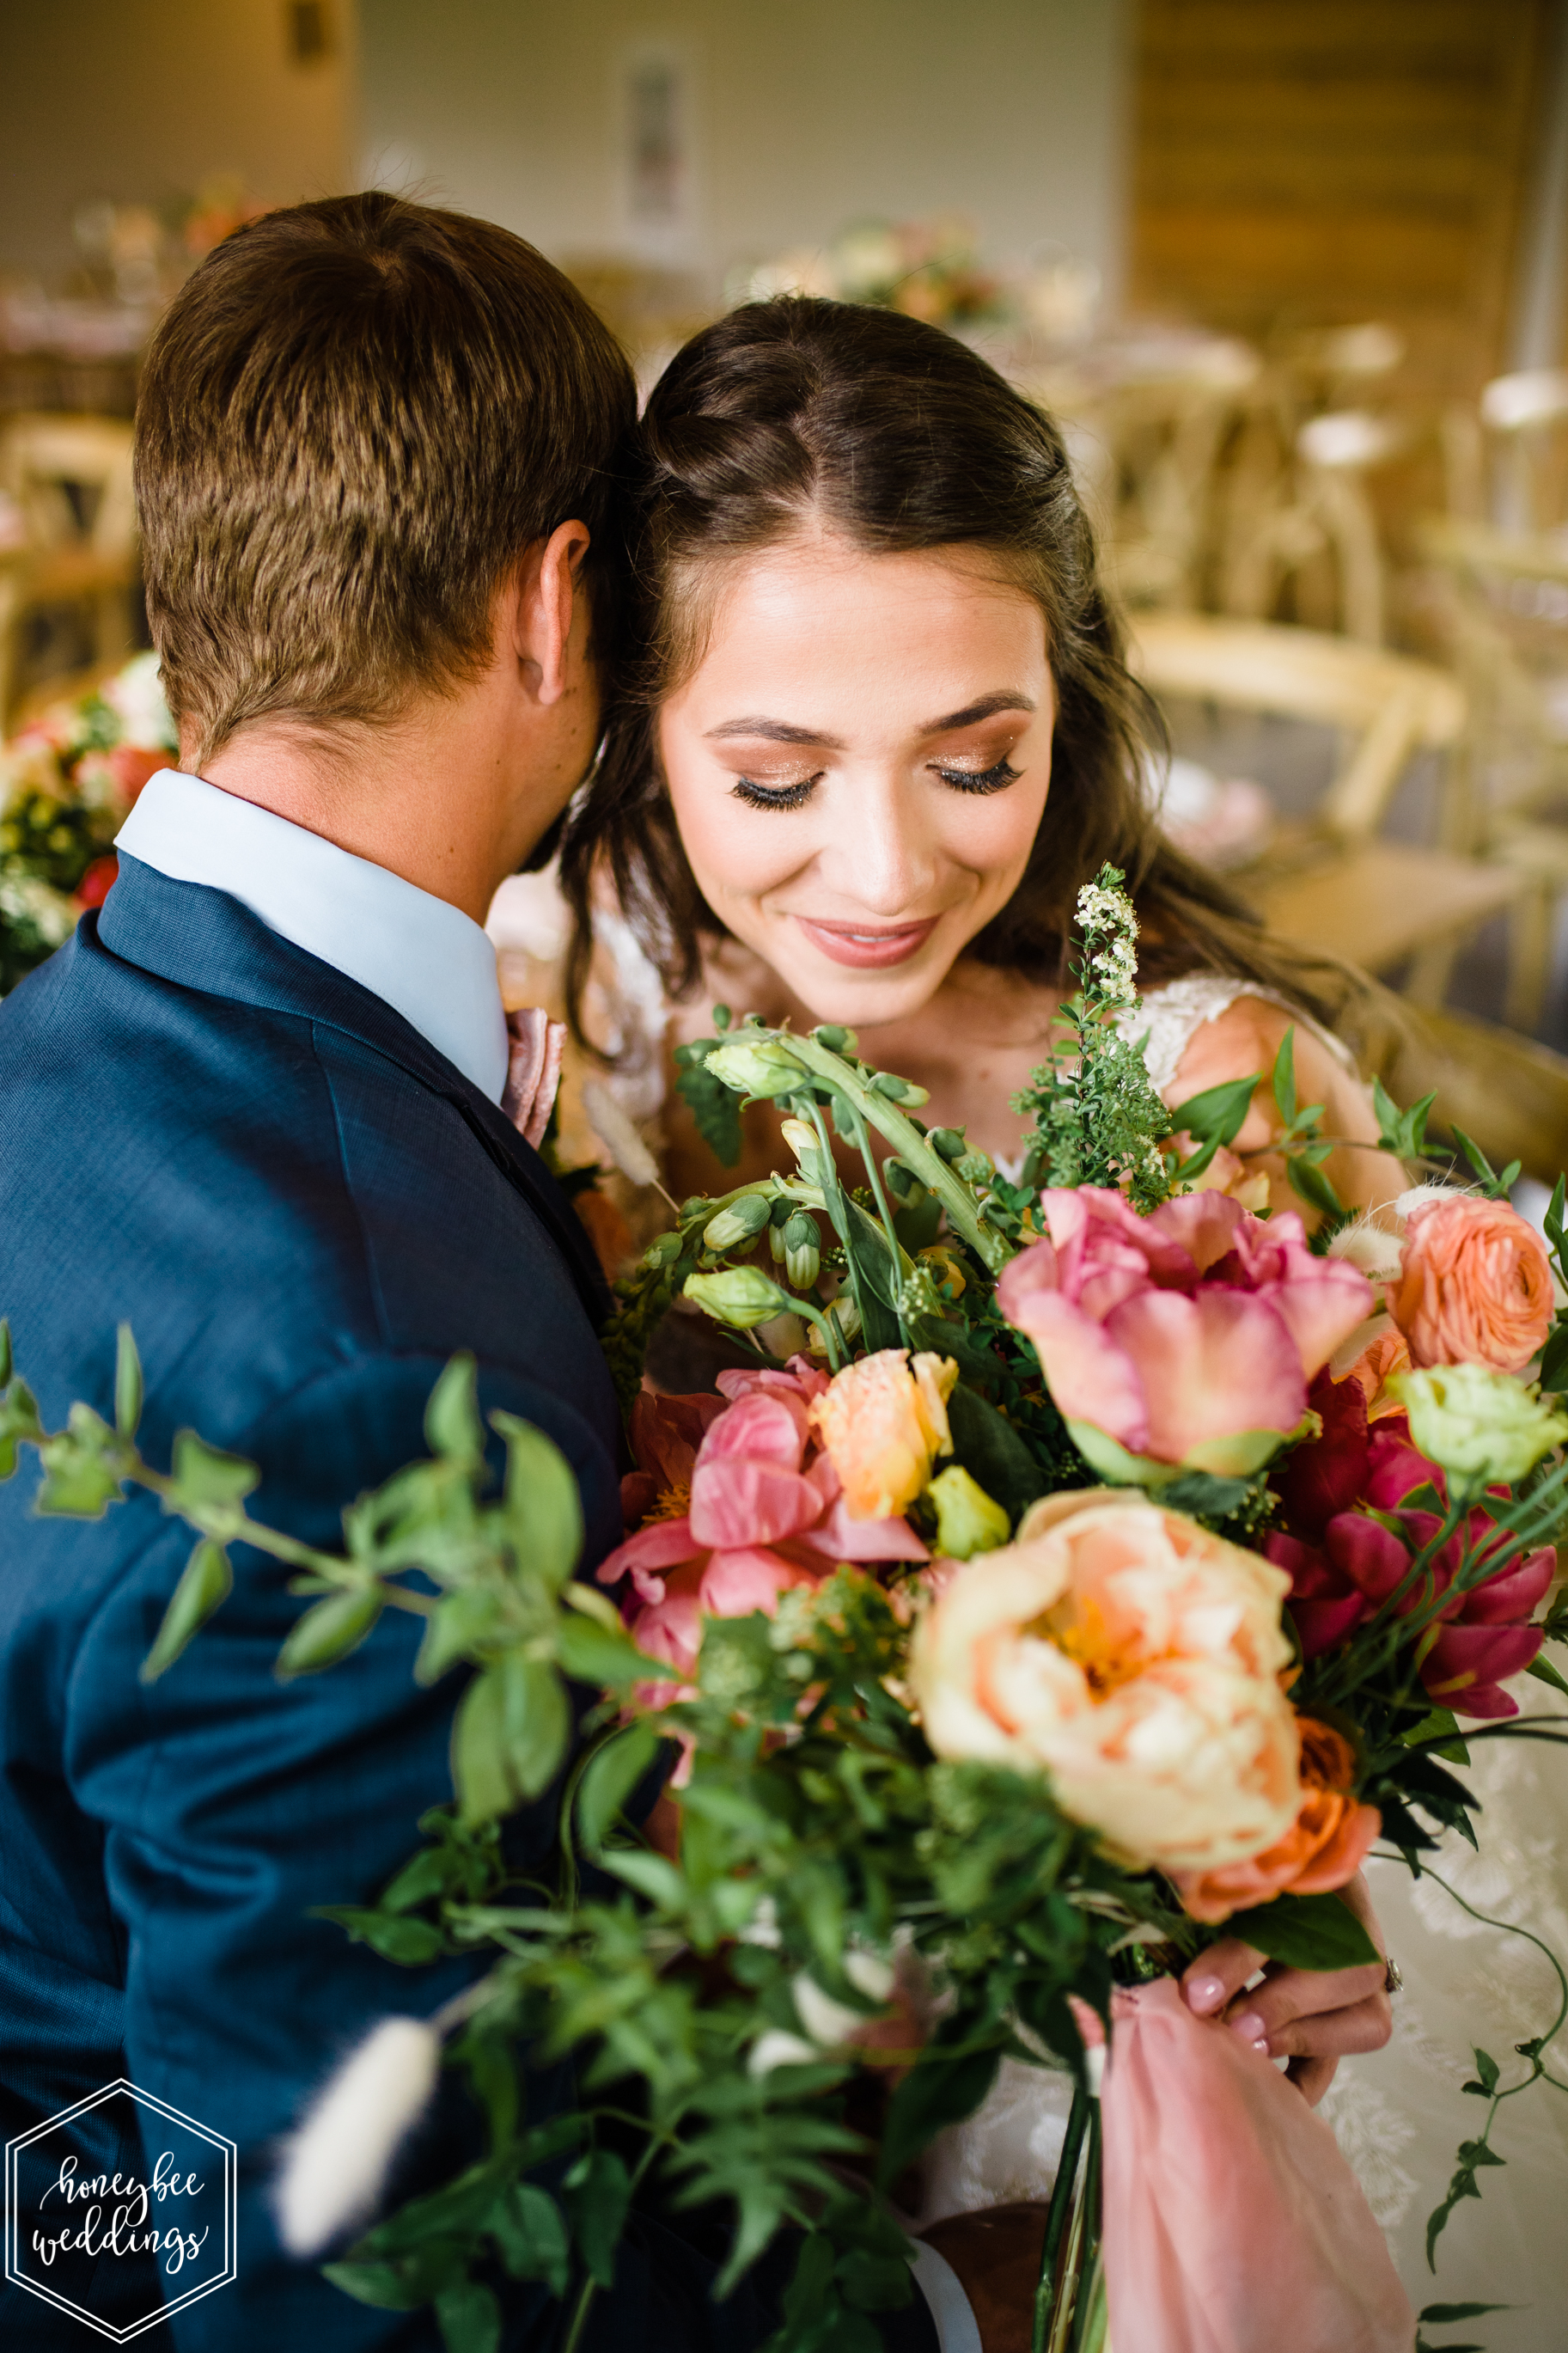 030Coral Mountain Wedding at White Raven_Honeybee Weddings_May 23, 2019-90.jpg